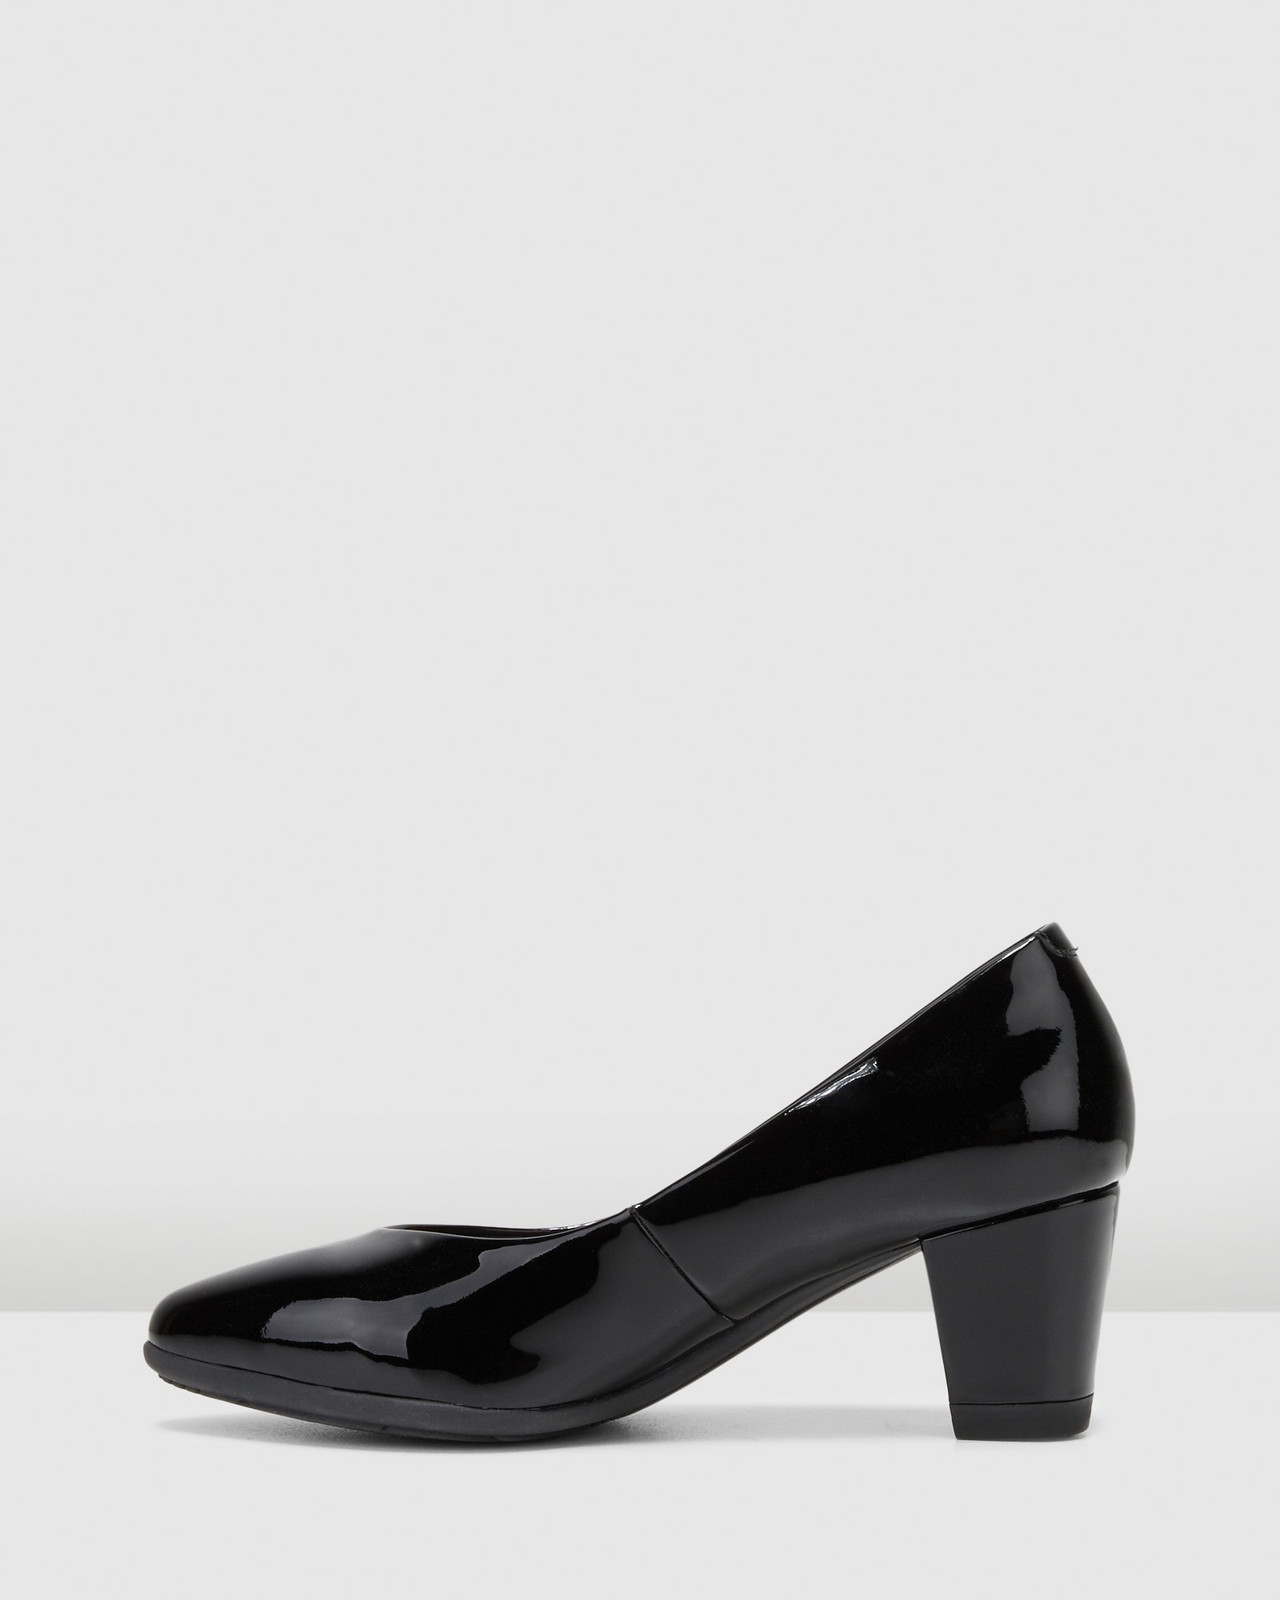 Hush Puppies  THE POINT Black Patent